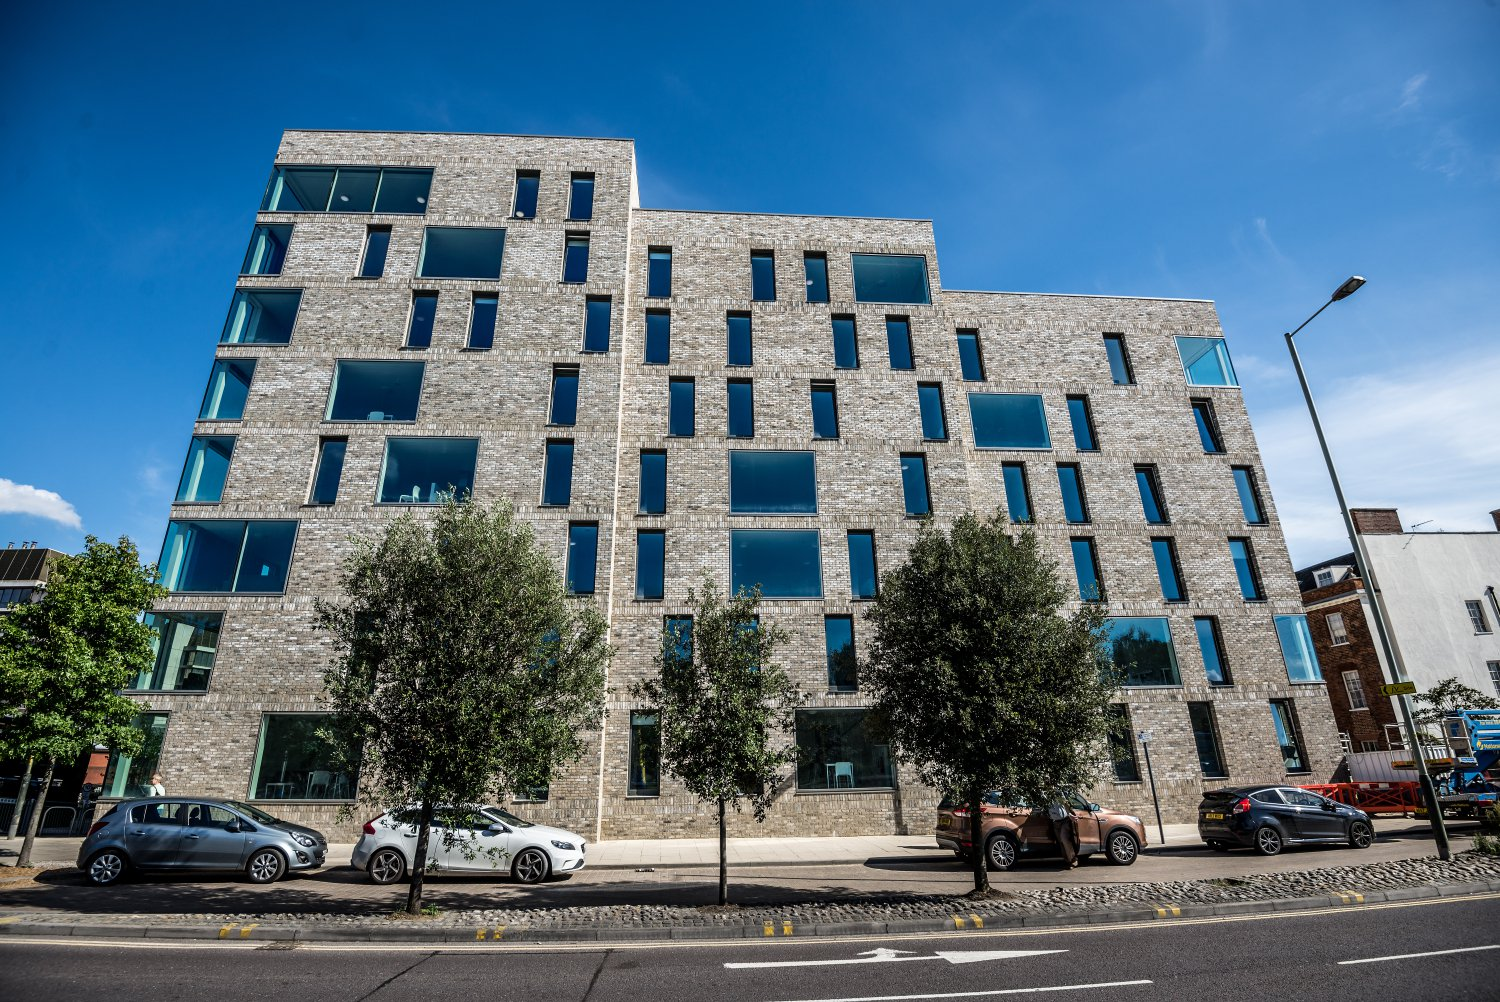 Picture of the whole building - All Saints Green student accommodation in Norwich for Norwich University of the Arts